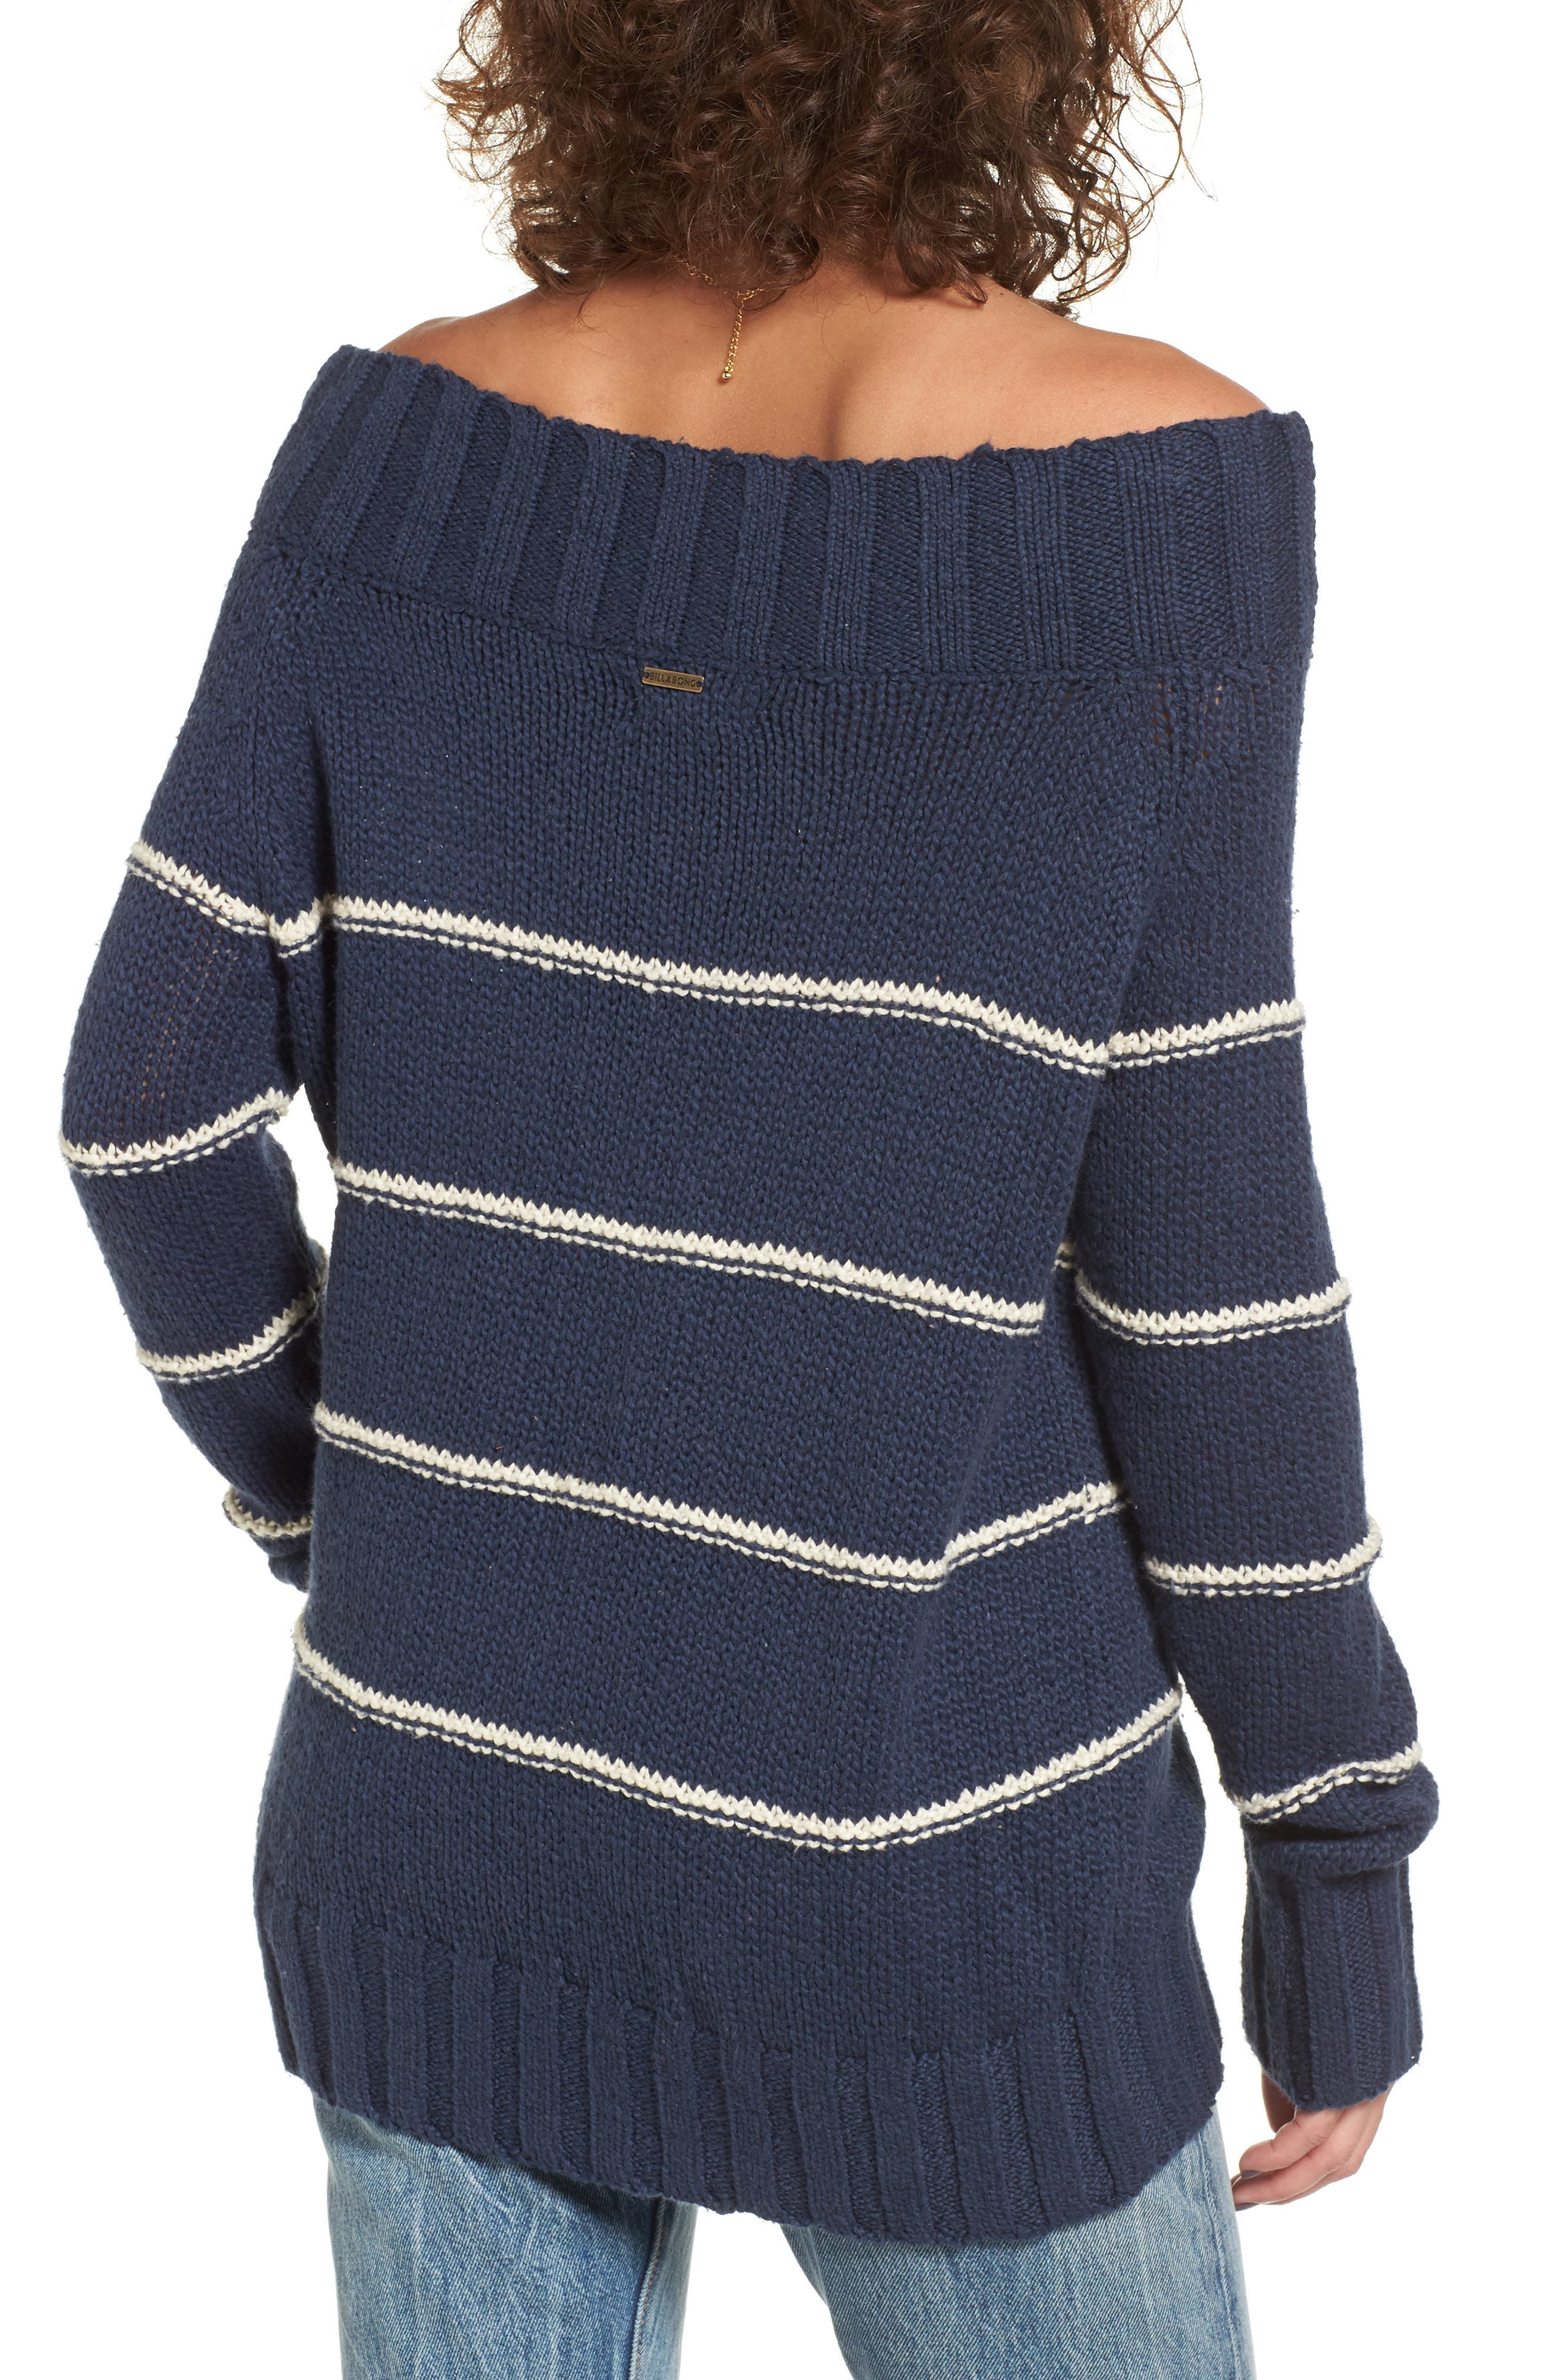 Snuggle Down Off the Shoulder Sweater,                             Alternate thumbnail 2, color,                             400